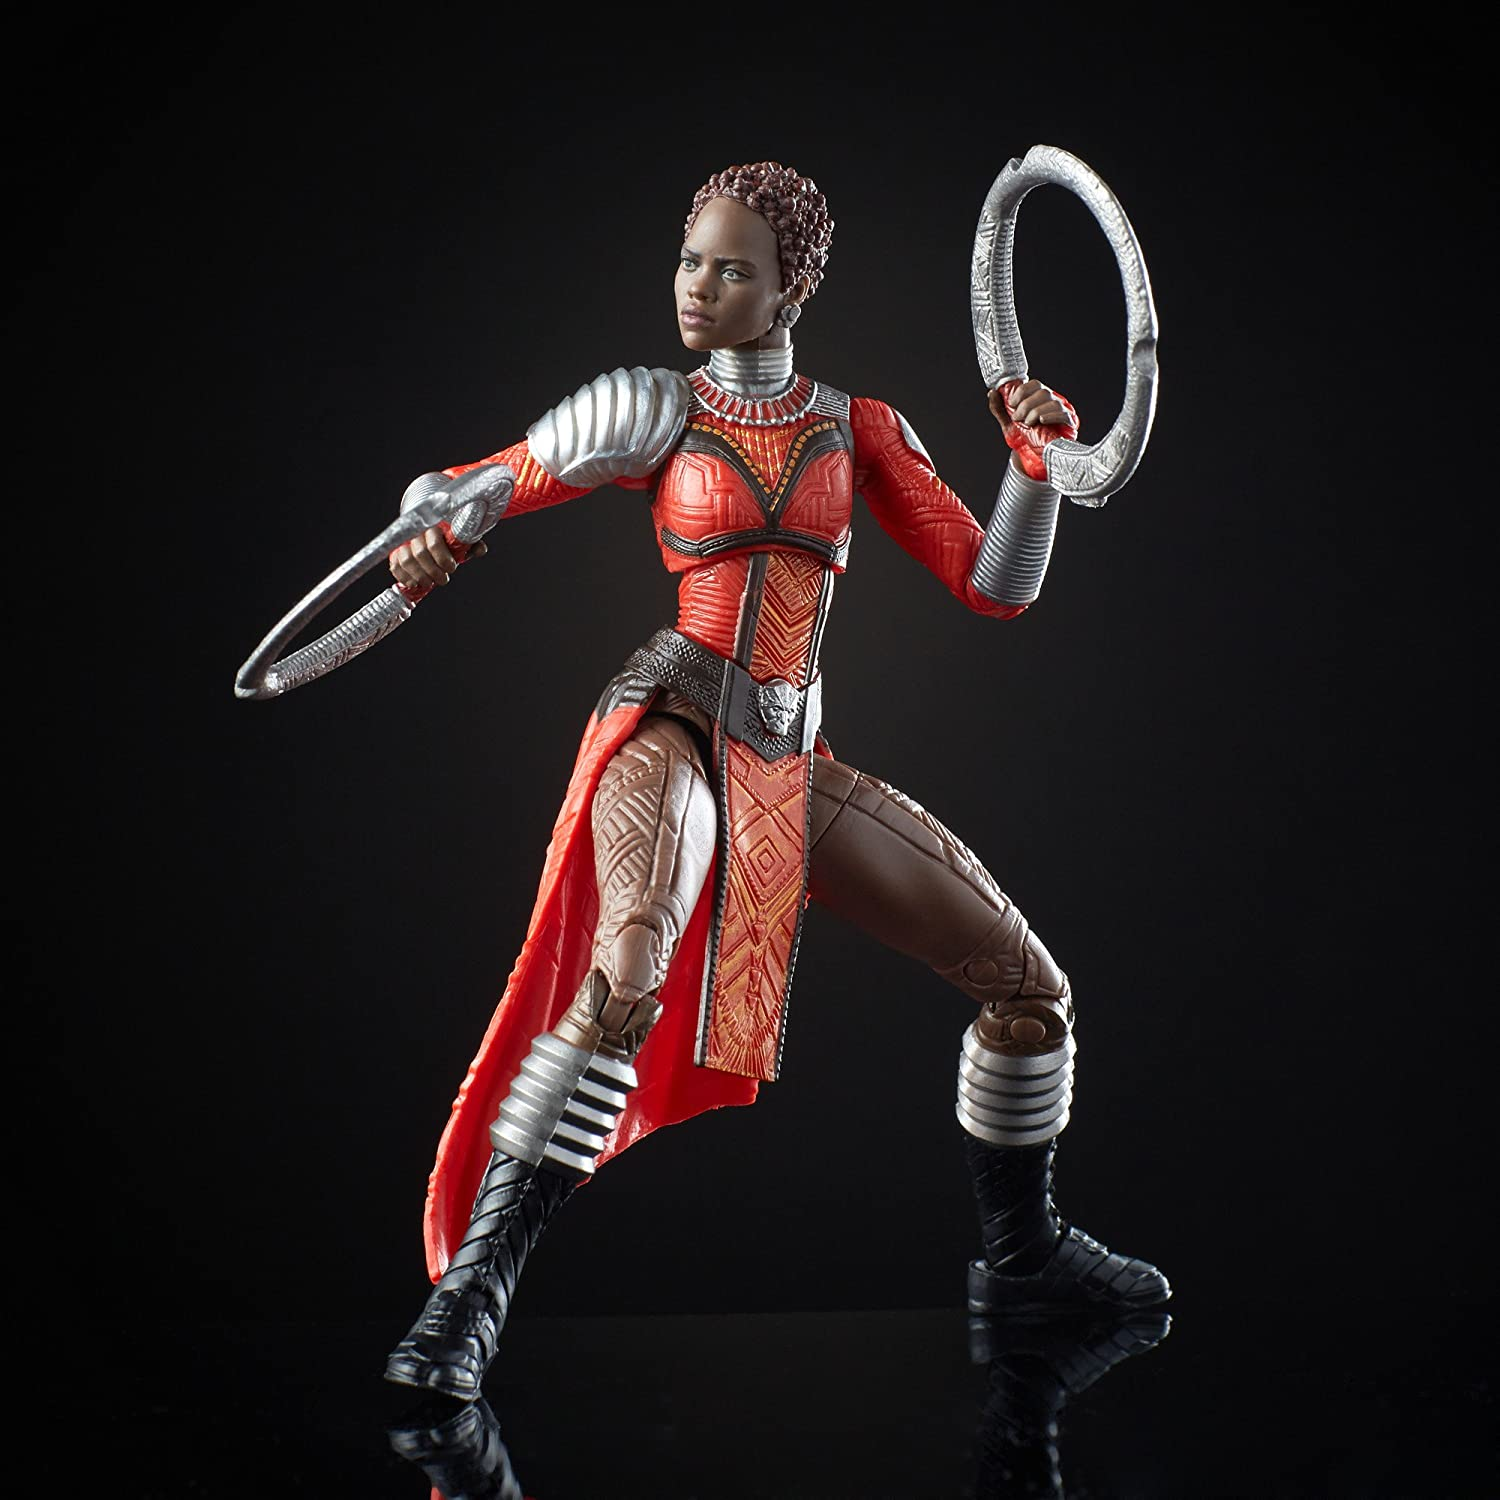 Hasbro Marvel Legends Series Black Panther Collection 6-inch Nakia Action Figure Toy